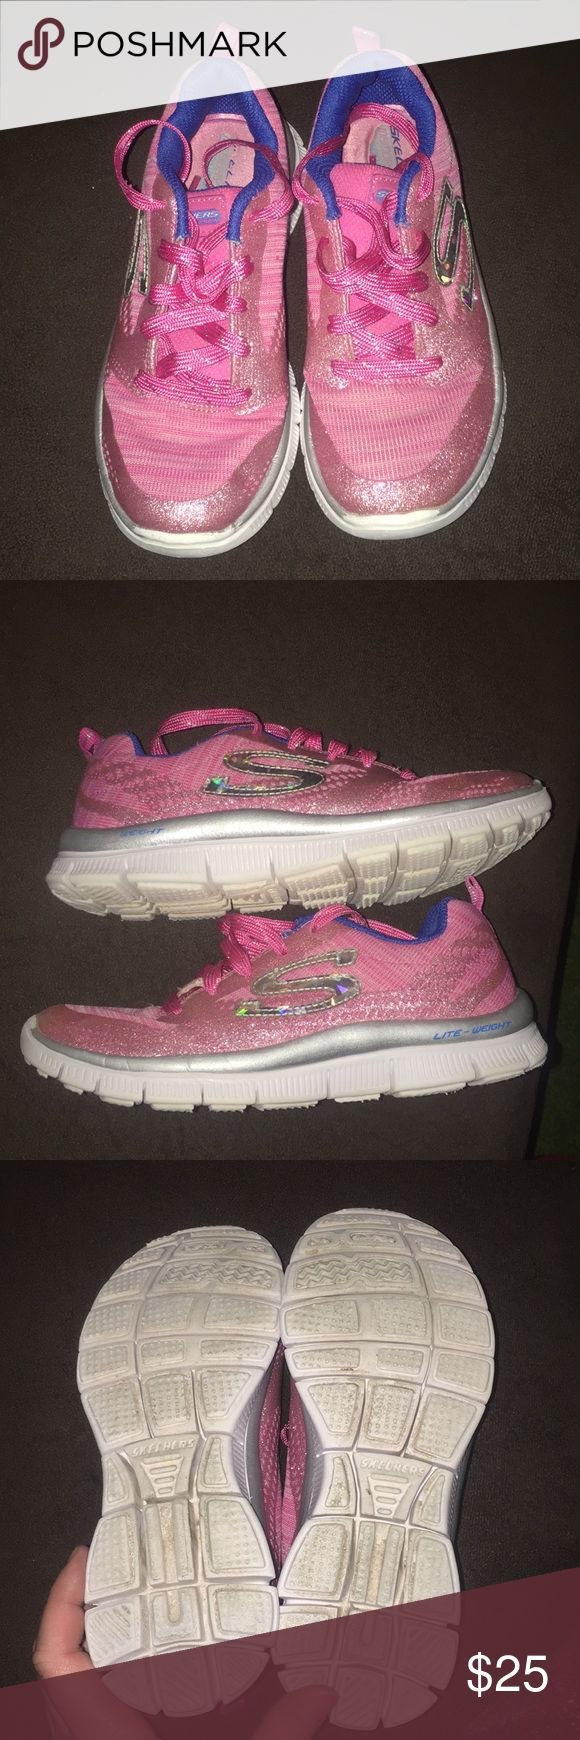 Sketcher sneakers Little girl size 2 sketcher sneakers only worn once. Excellent condition. My daughter wanted sketchers but she wanted sketcher air and refused to wear these. sketchers Shoes Sneakers